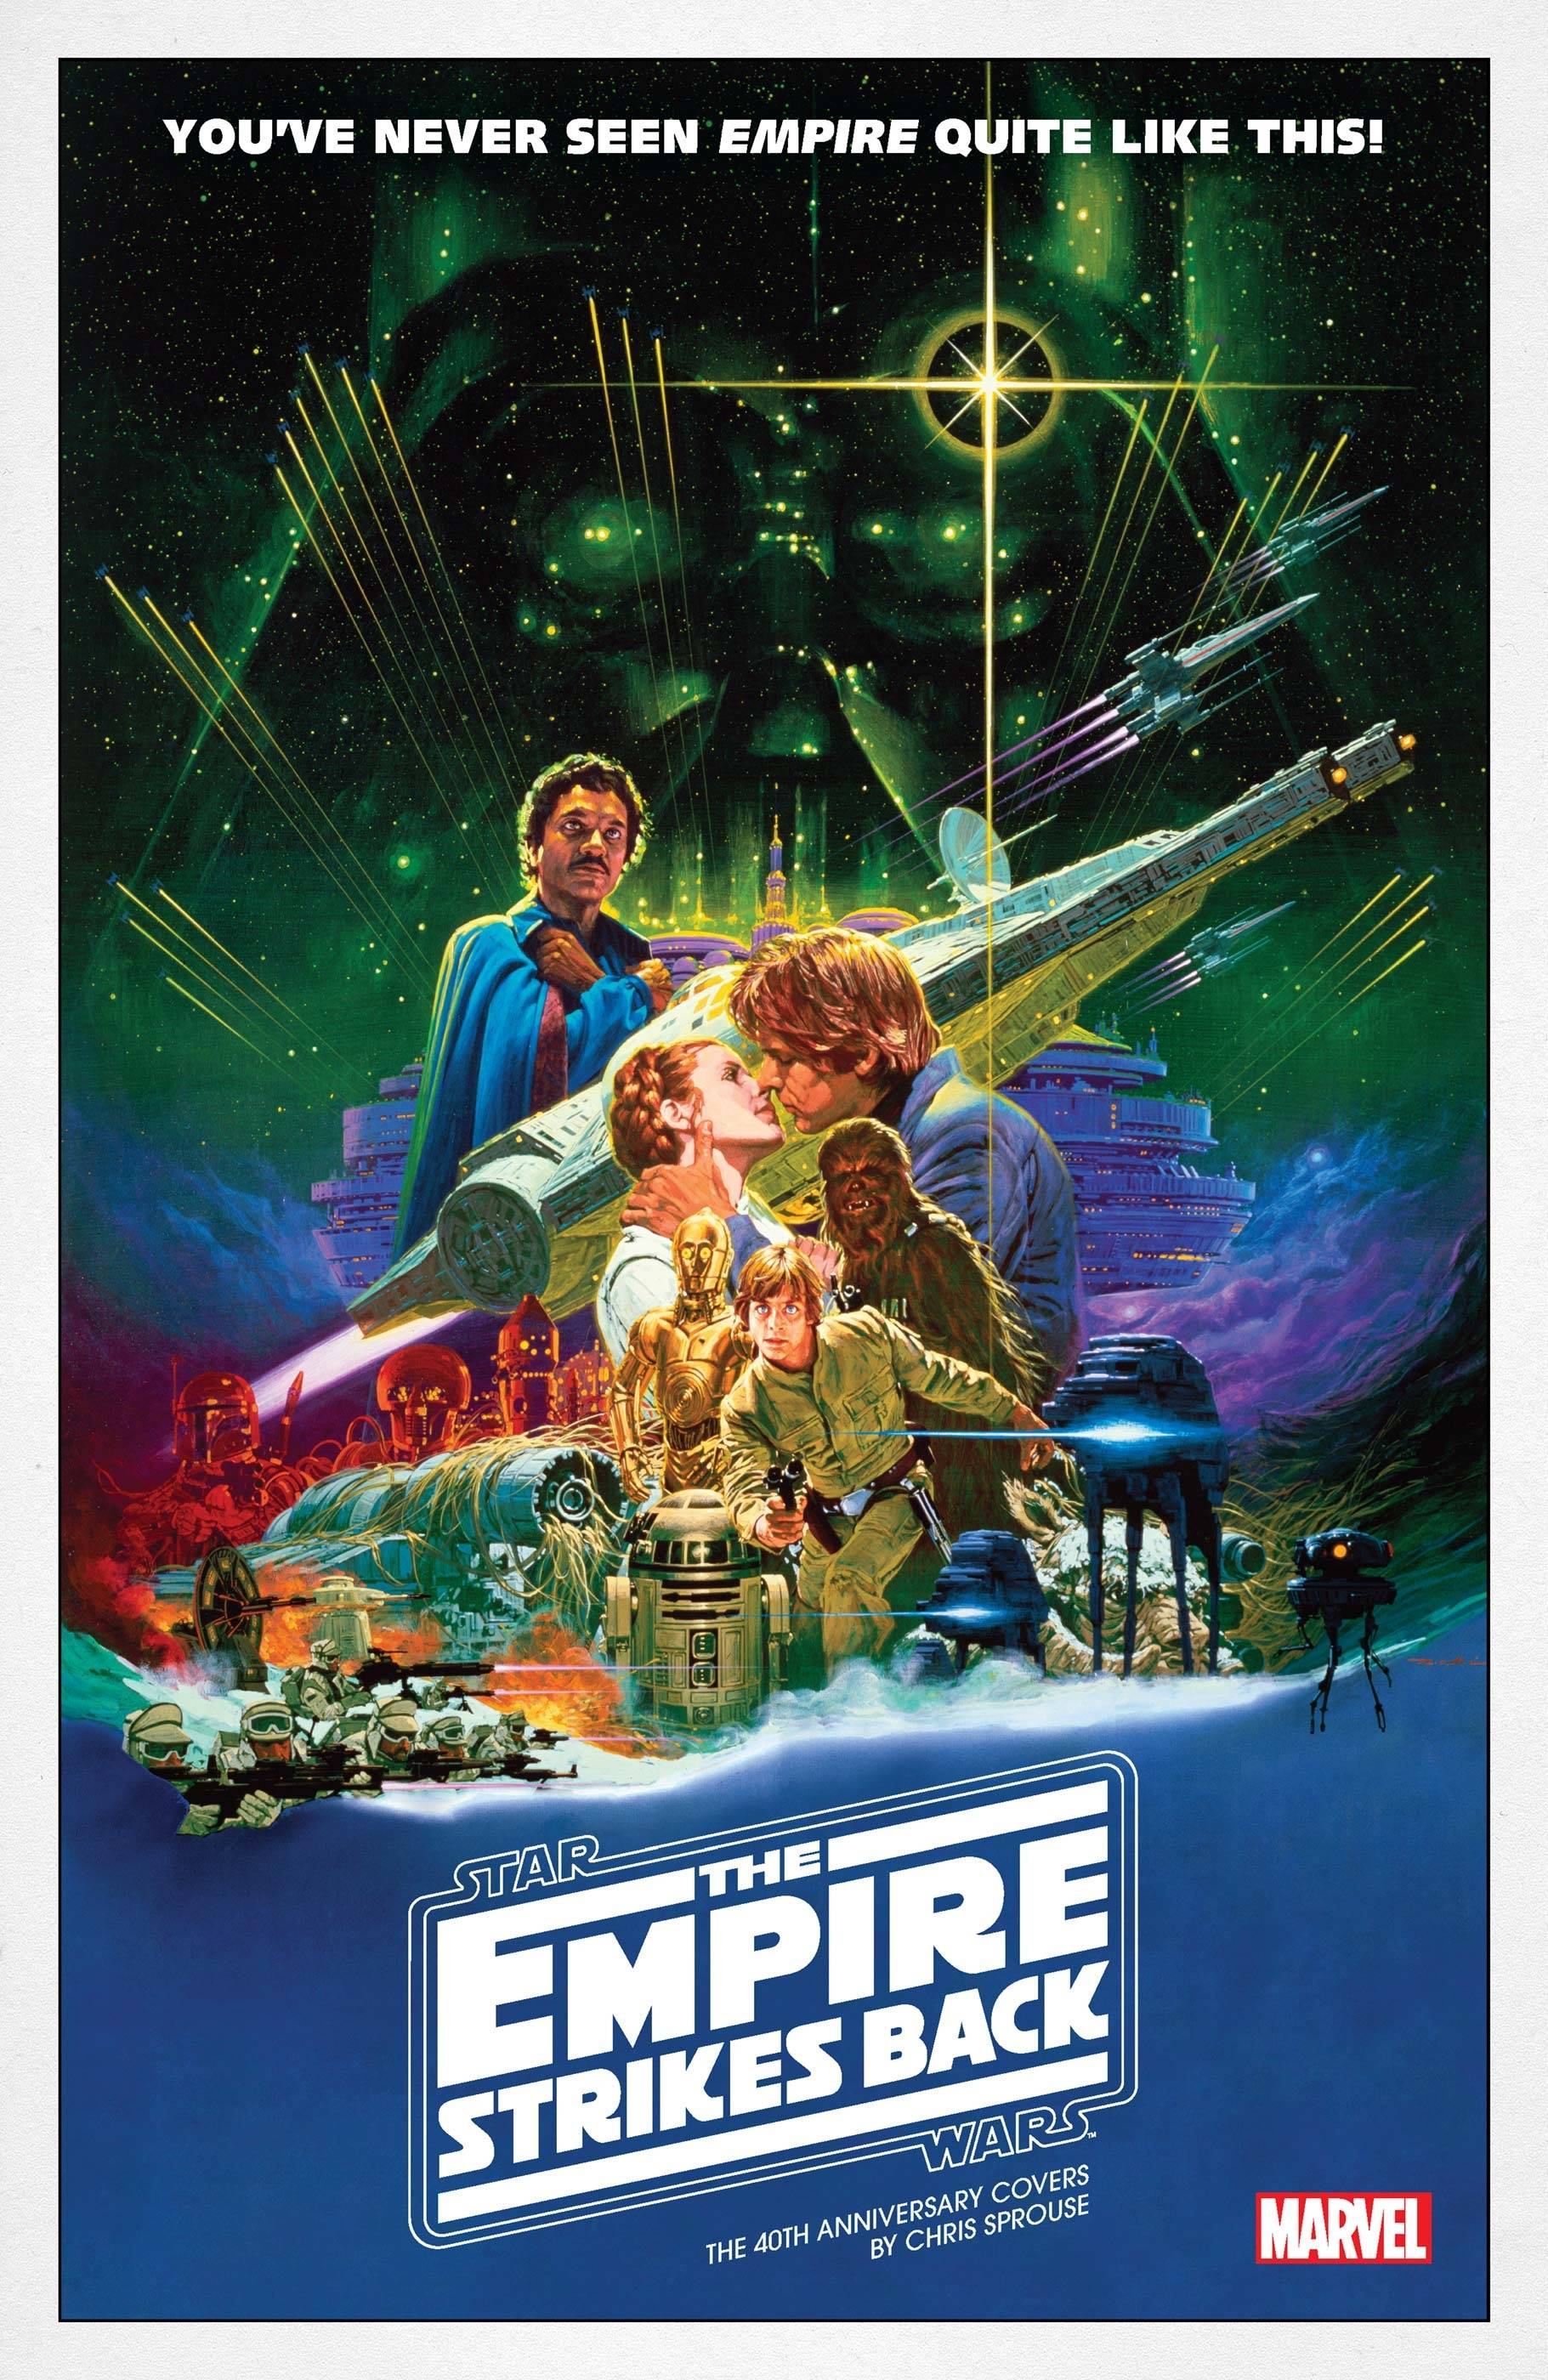 star wars the empire strikes back 1 40th anniversary cover sprouse movie poster variant